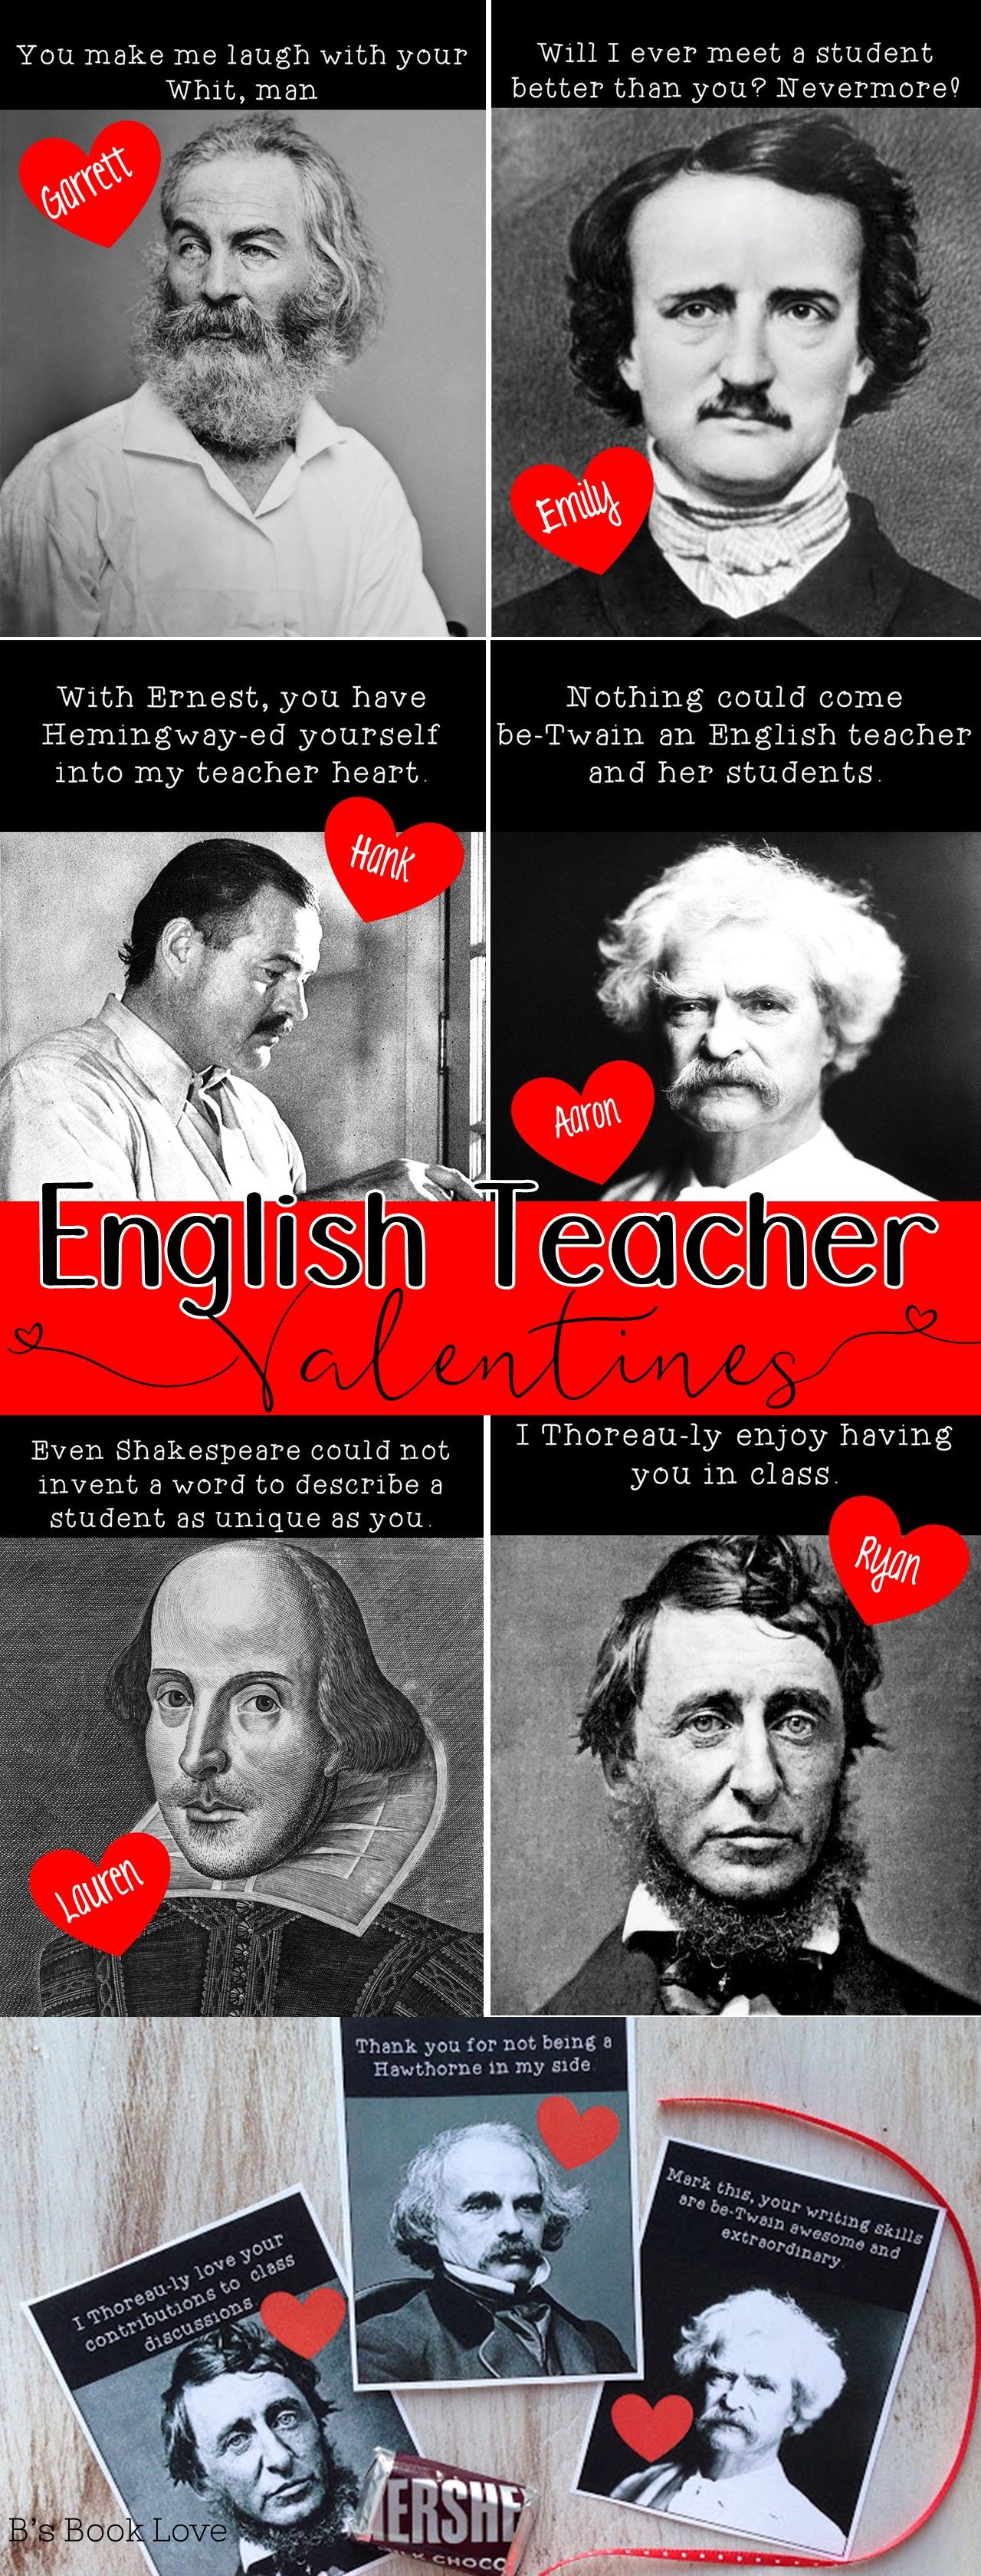 English Teacher Valentines Library Valentine S Day Posters And Decorations English Teacher Valentines Valentines School English Teacher